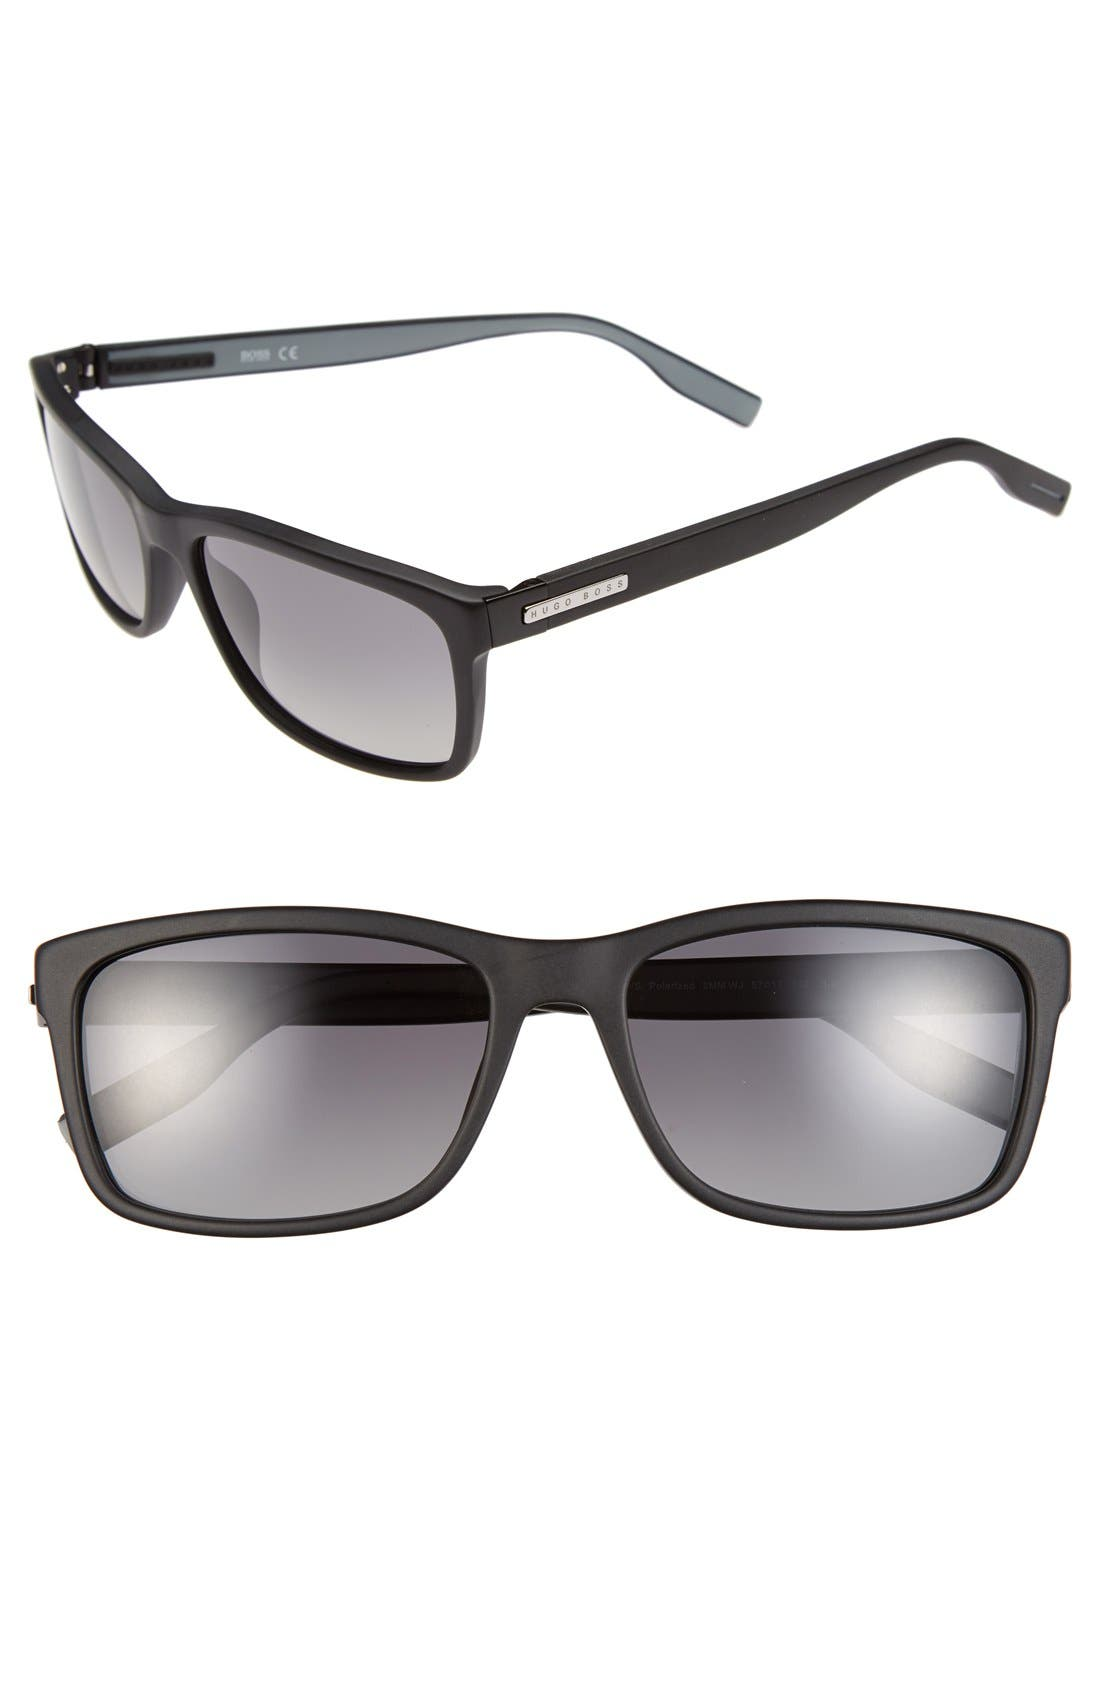 Main Image - BOSS 57mm Polarized Retro Sunglasses